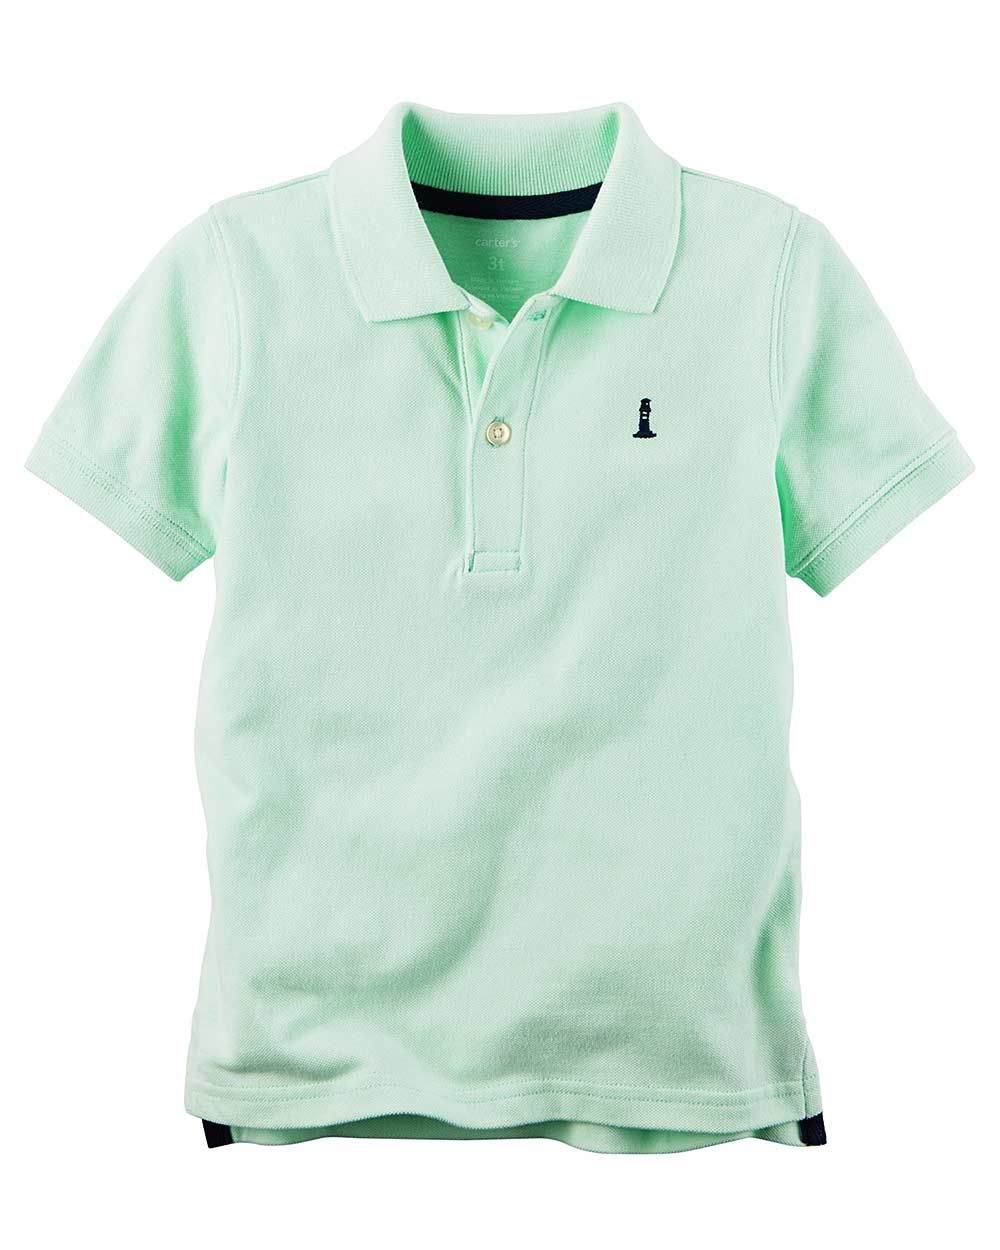 BOTTLE GREEN Boys Girls Kids School Polo Shirt T-Shirt Uniform Sports P.E POS